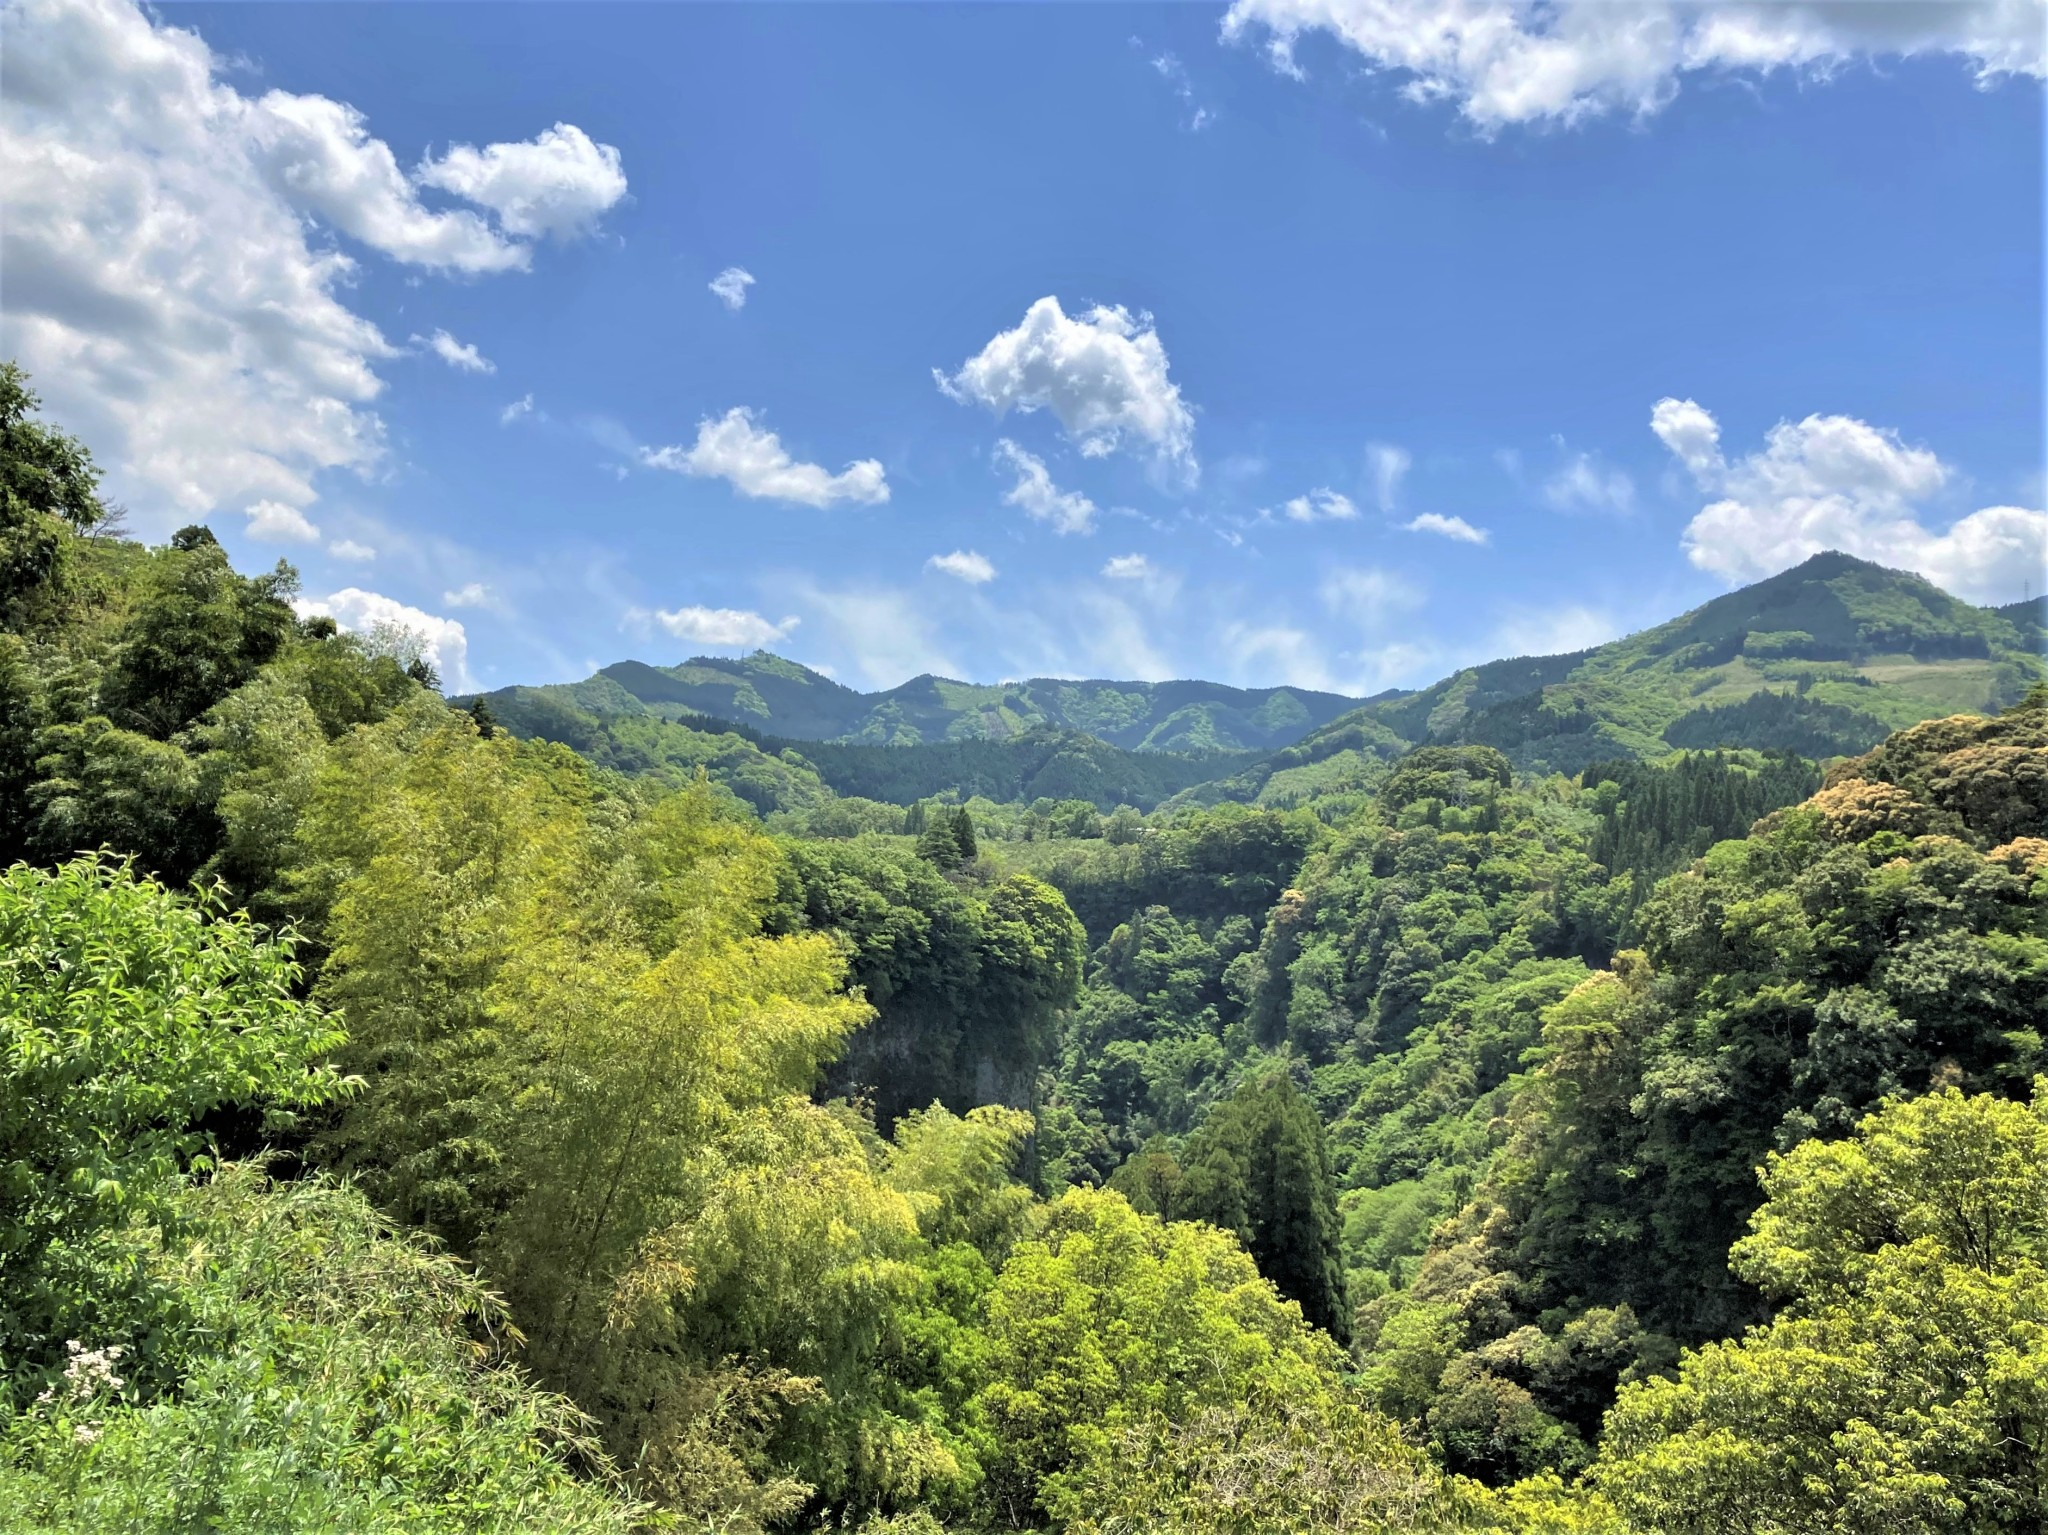 The green hills and valleys of Kyushu, Japan beneath a bright blue and partially cloudy sky.